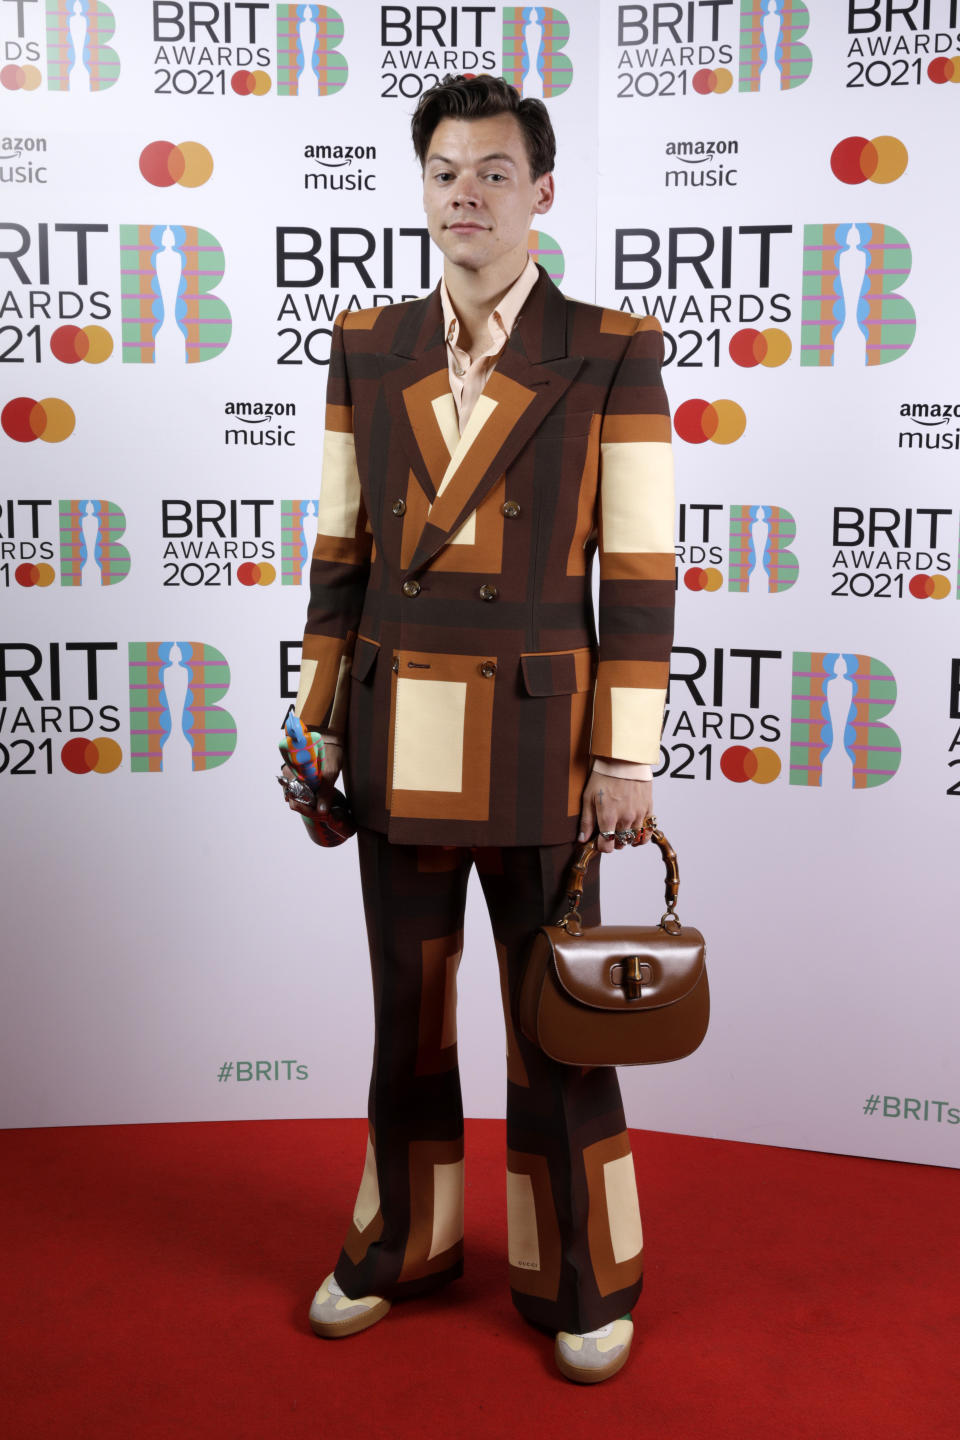 Harry Styles wins the Mastercard British Single award for Watermelon Sugar during The BRIT Awards 2021 at The O2 Arena on May 11, 2021 in London, England.